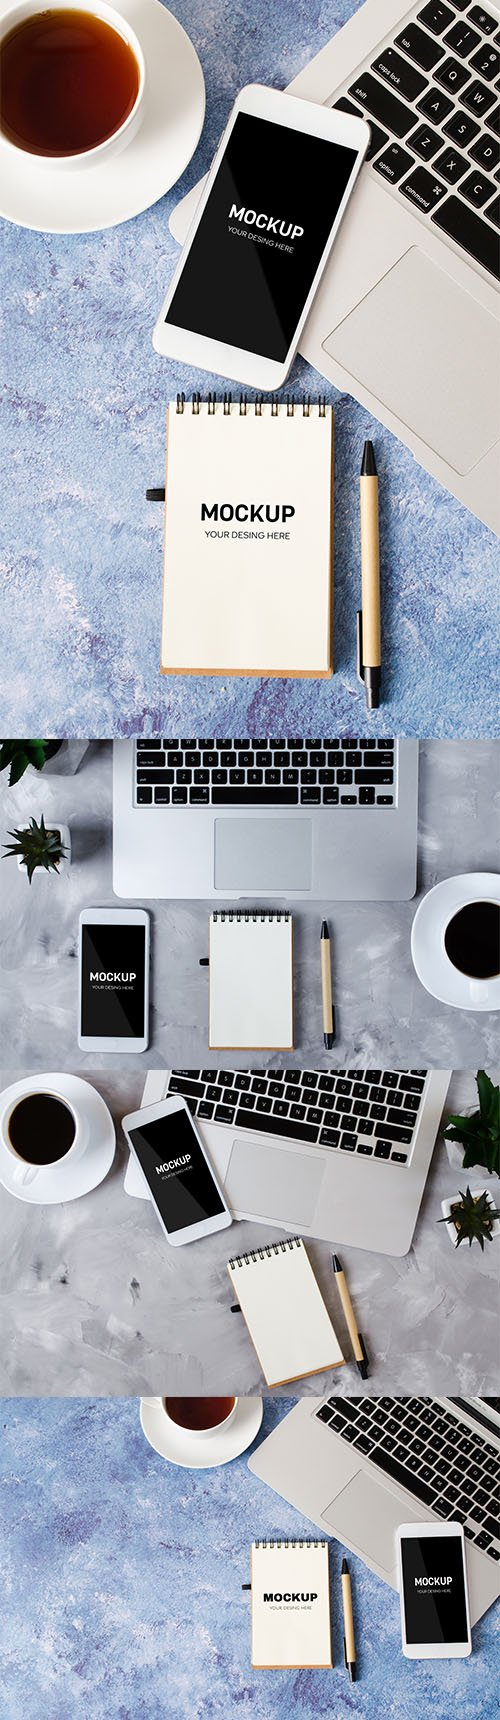 White Smartphone and Screen Office Desk with Cup Coffee PSD Set